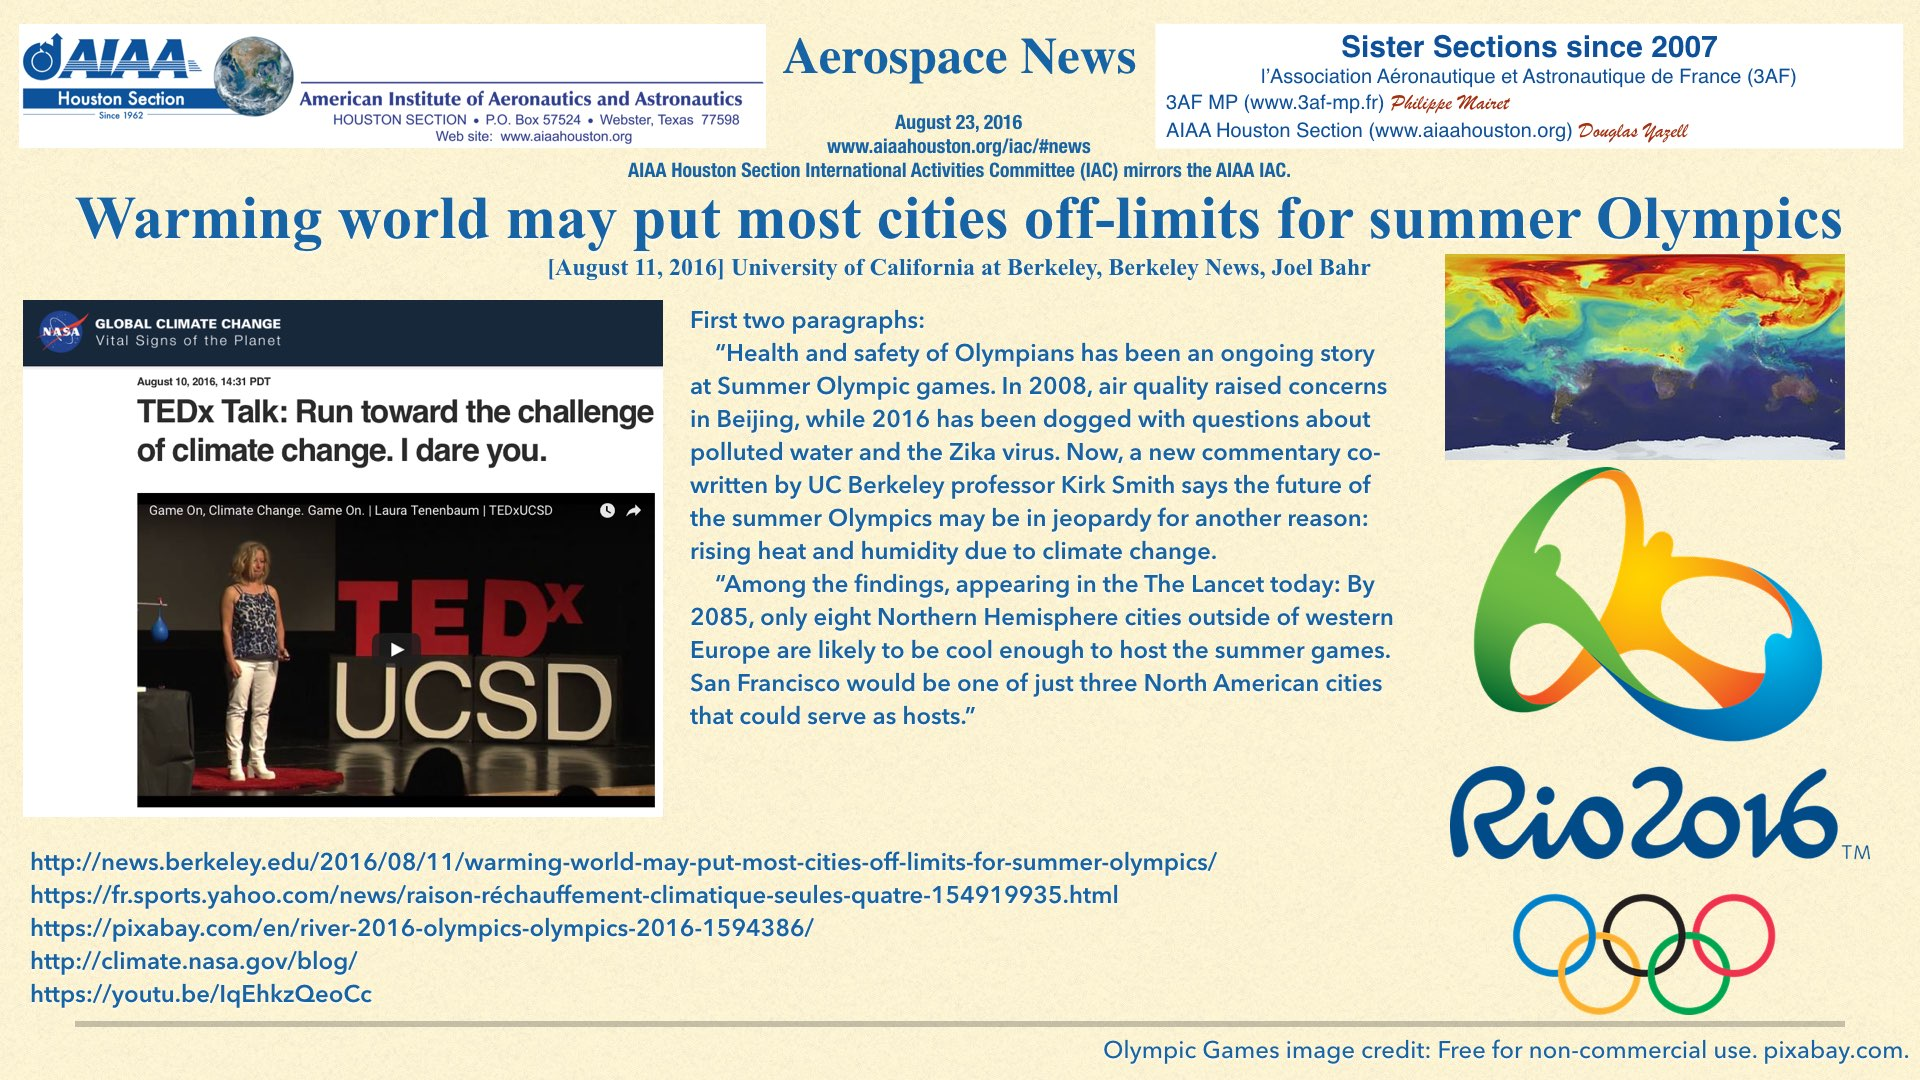 Above: Warming world may put most cities off-limits for summer Olympics. (Click to zoom.)